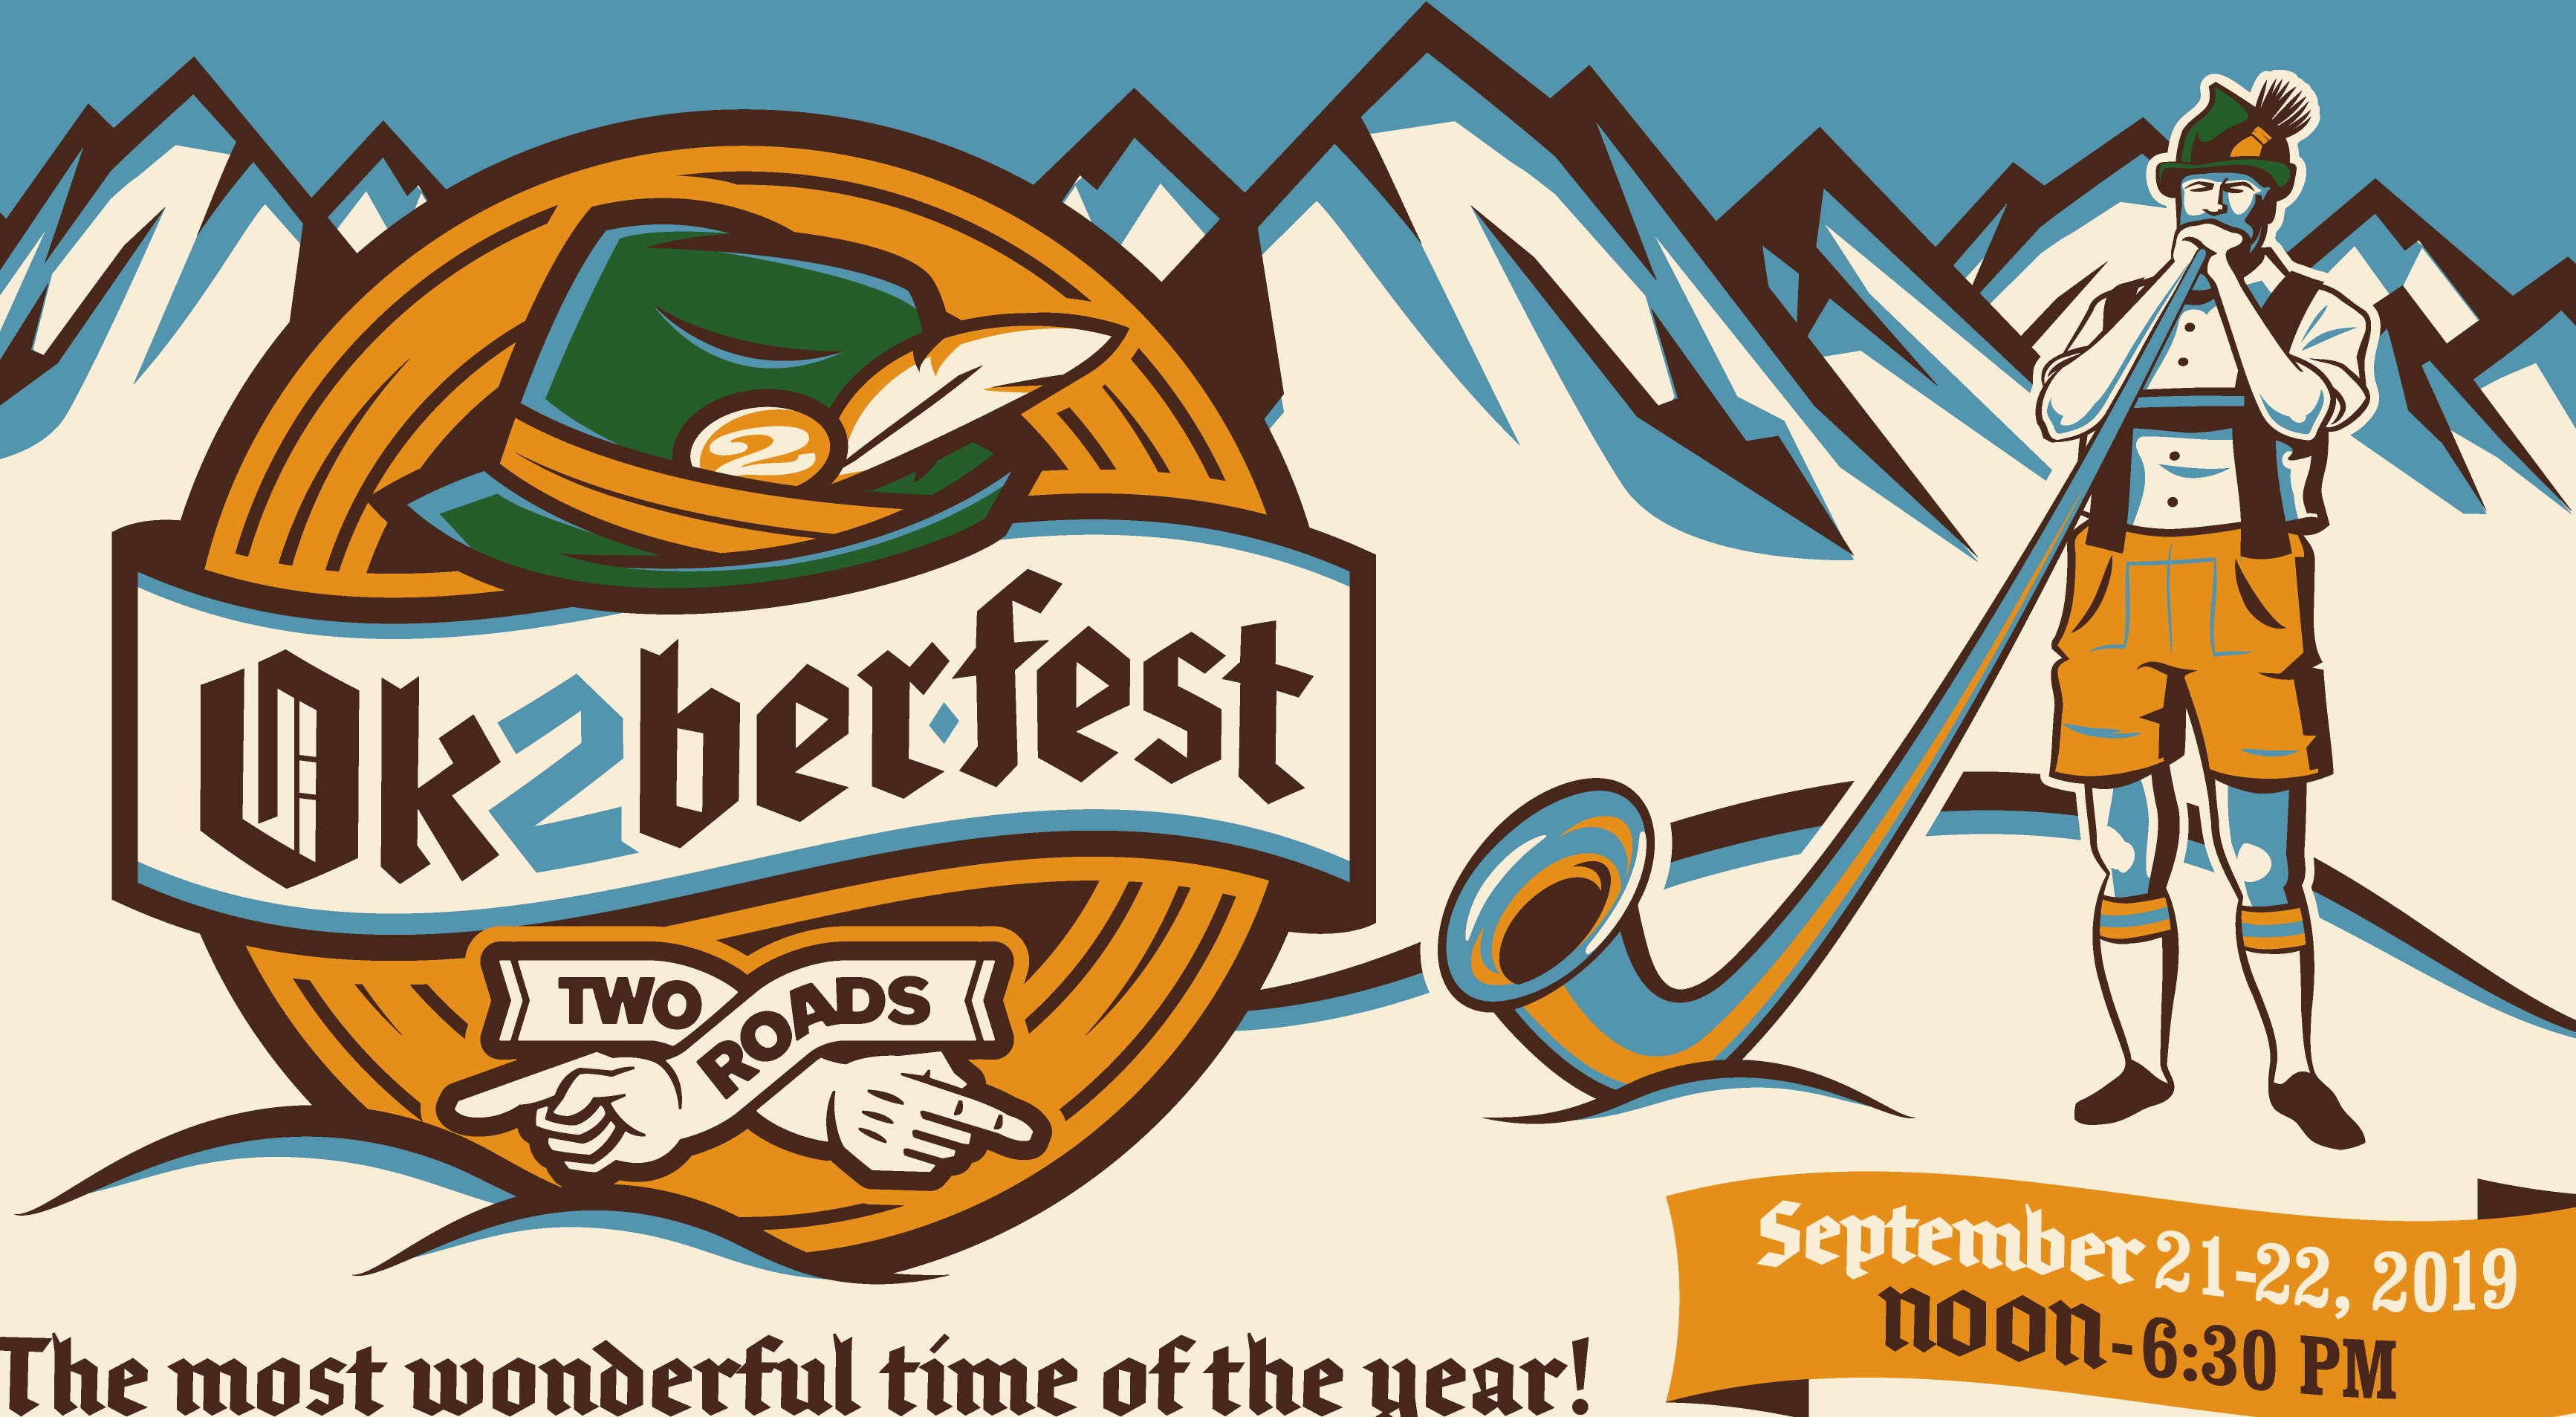 Tickets for Two Roads Ok2berfest 2019 in Stratford from BeerFests.com